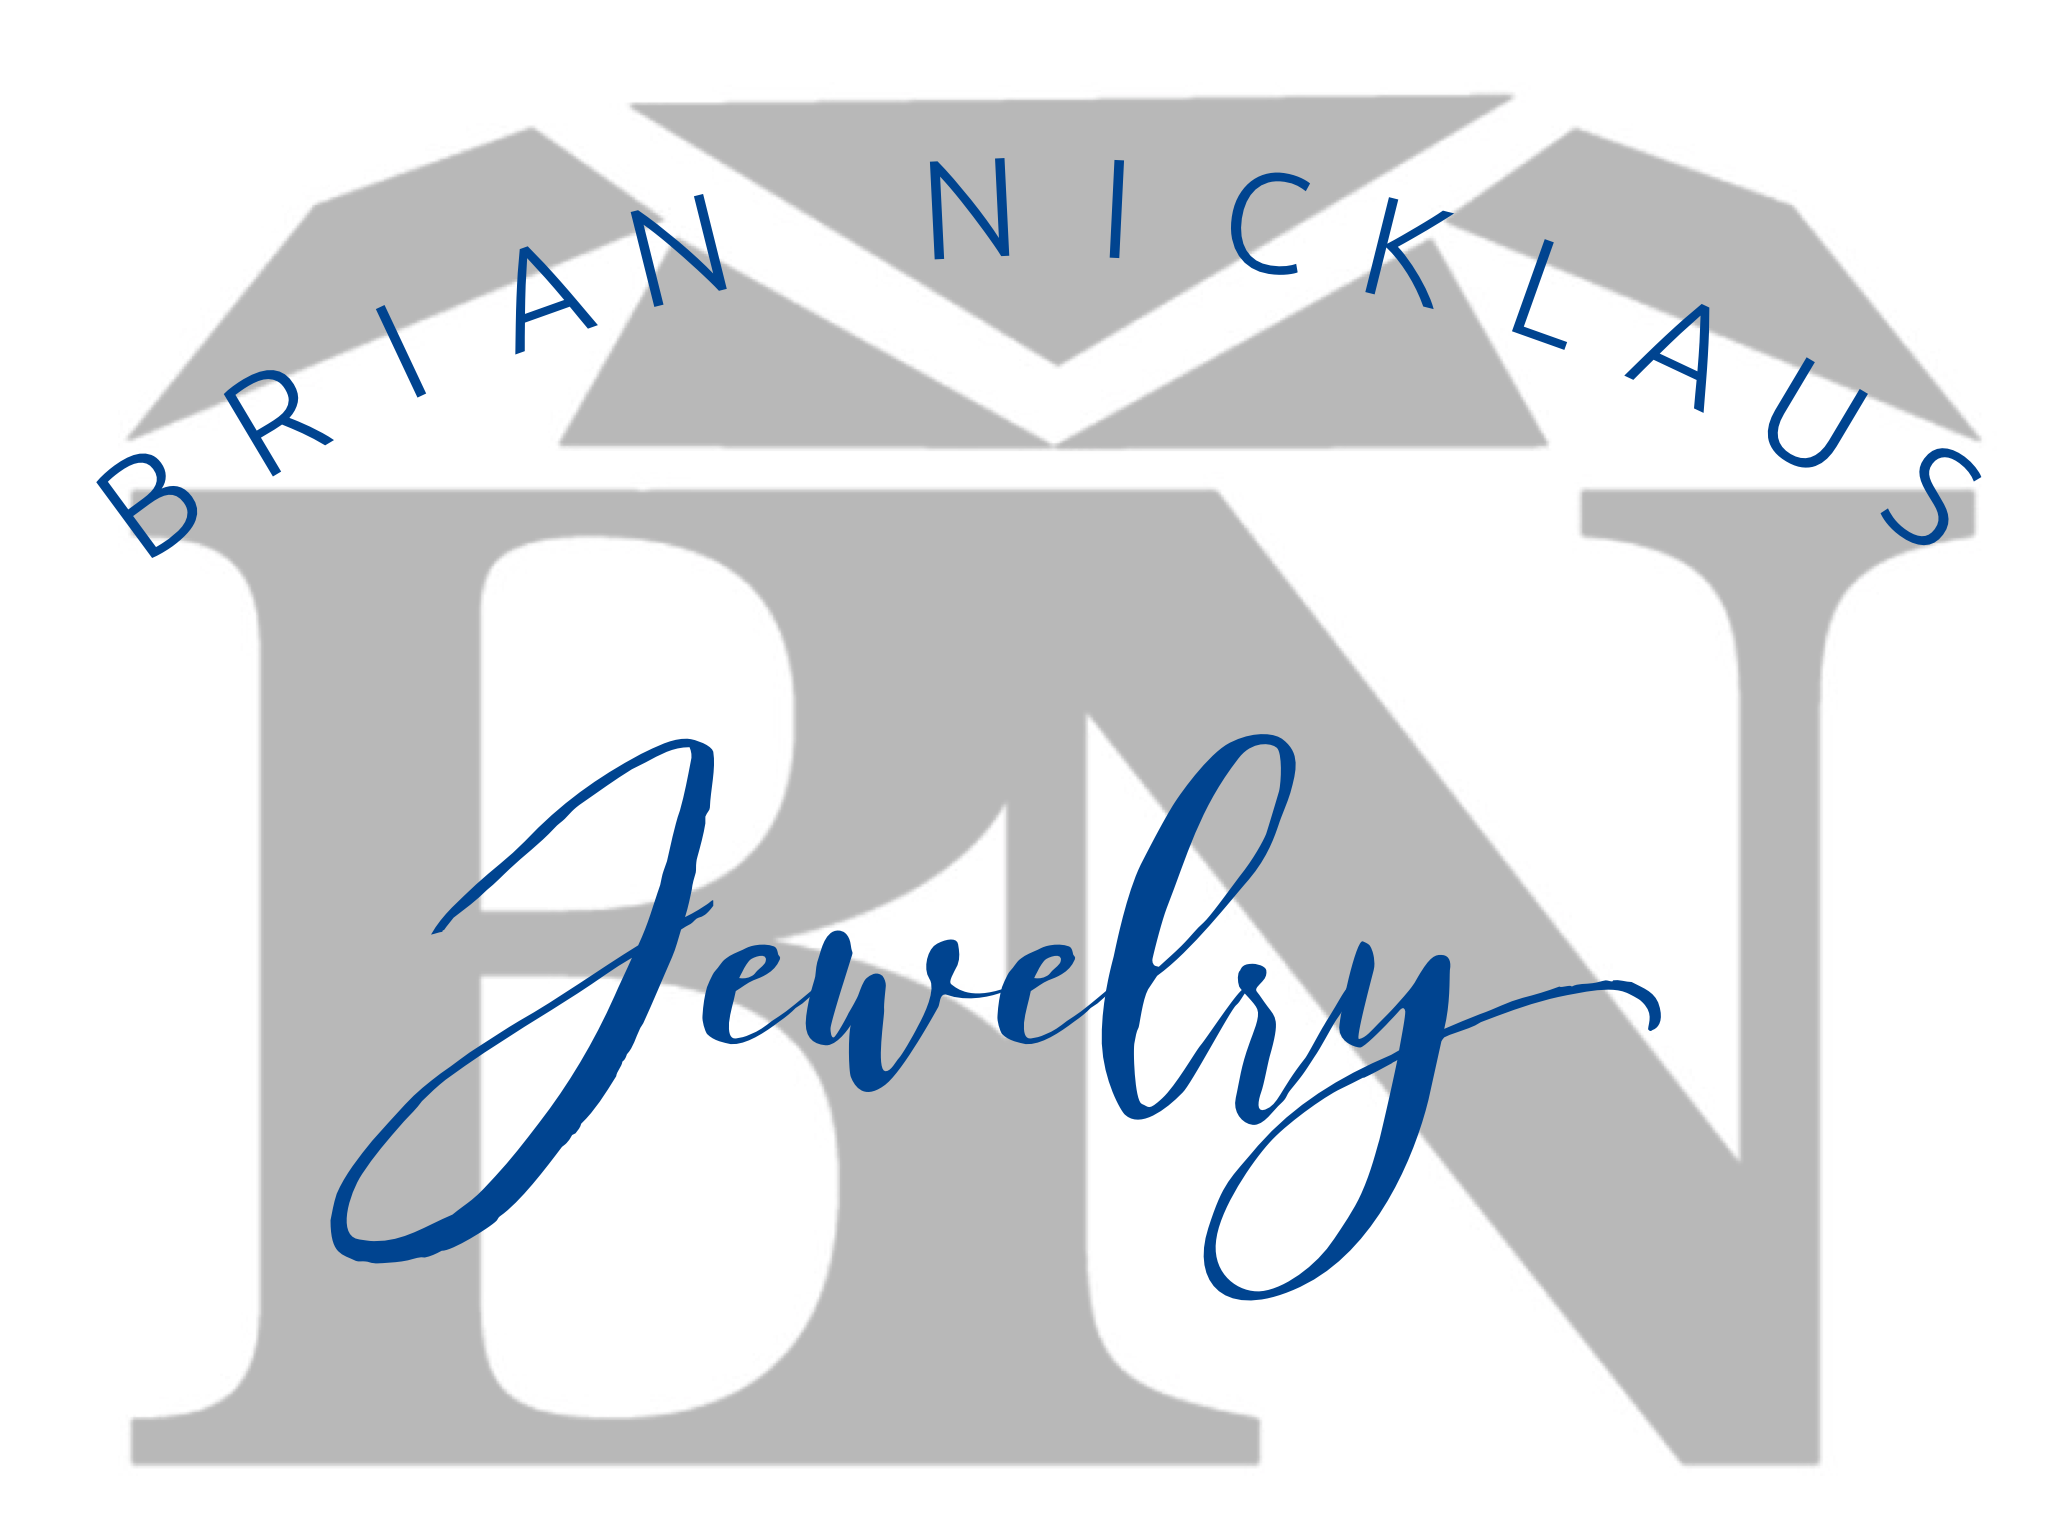 Brian Nicklaus Jewelry Gift Card